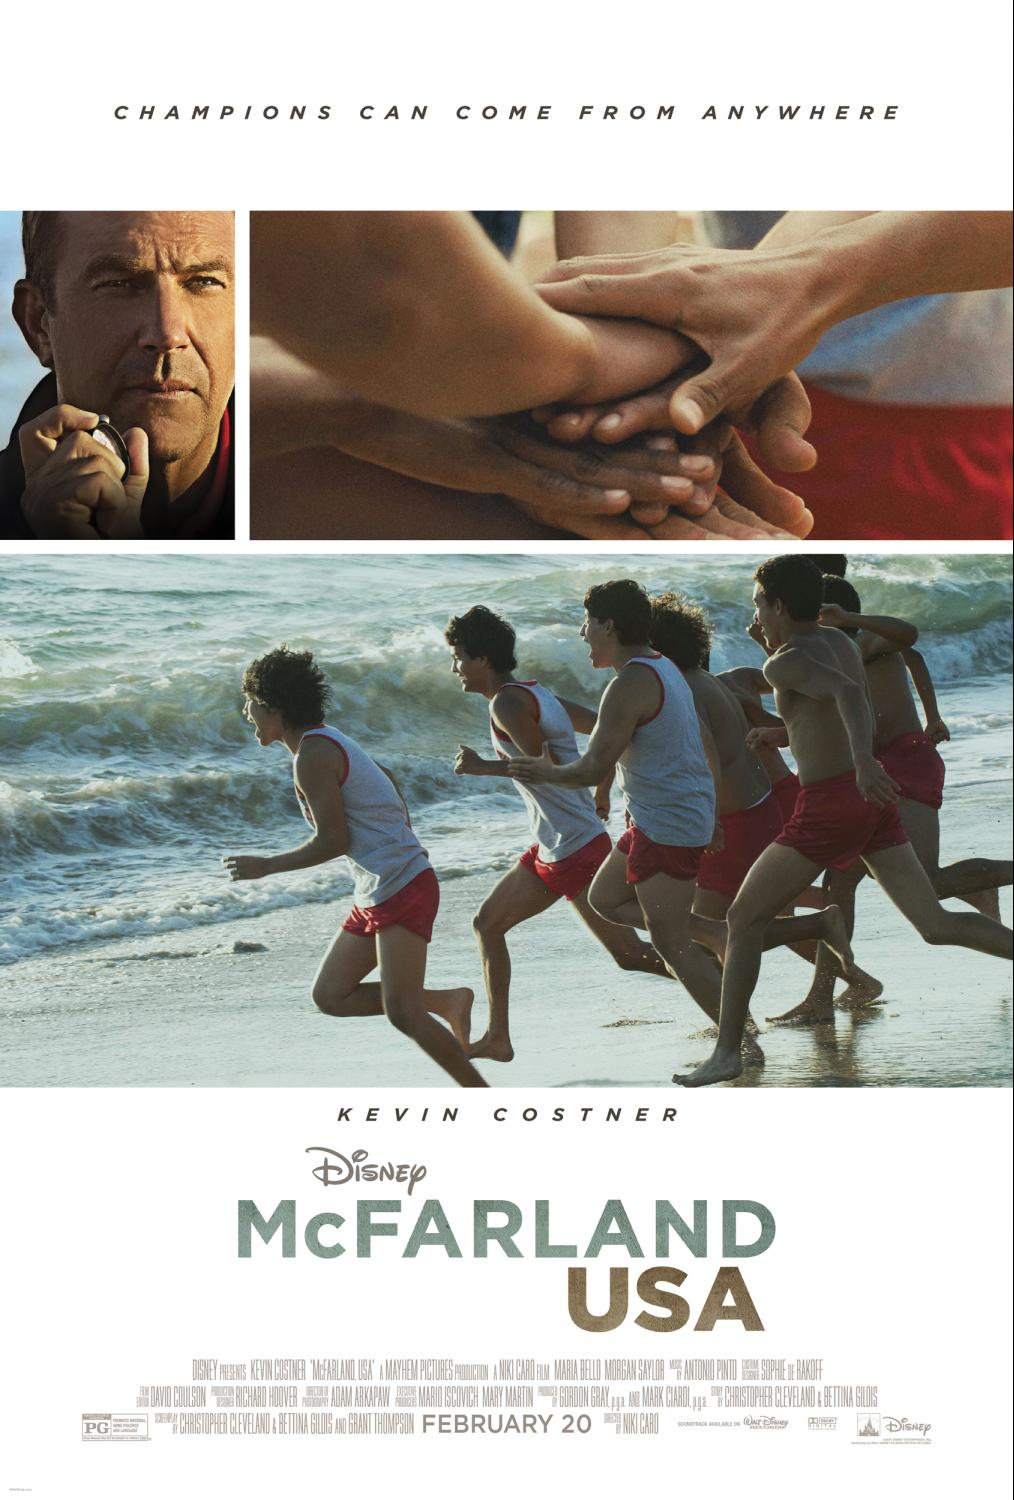 Poster MCFARLAND, USA Opens February 20, 2015!